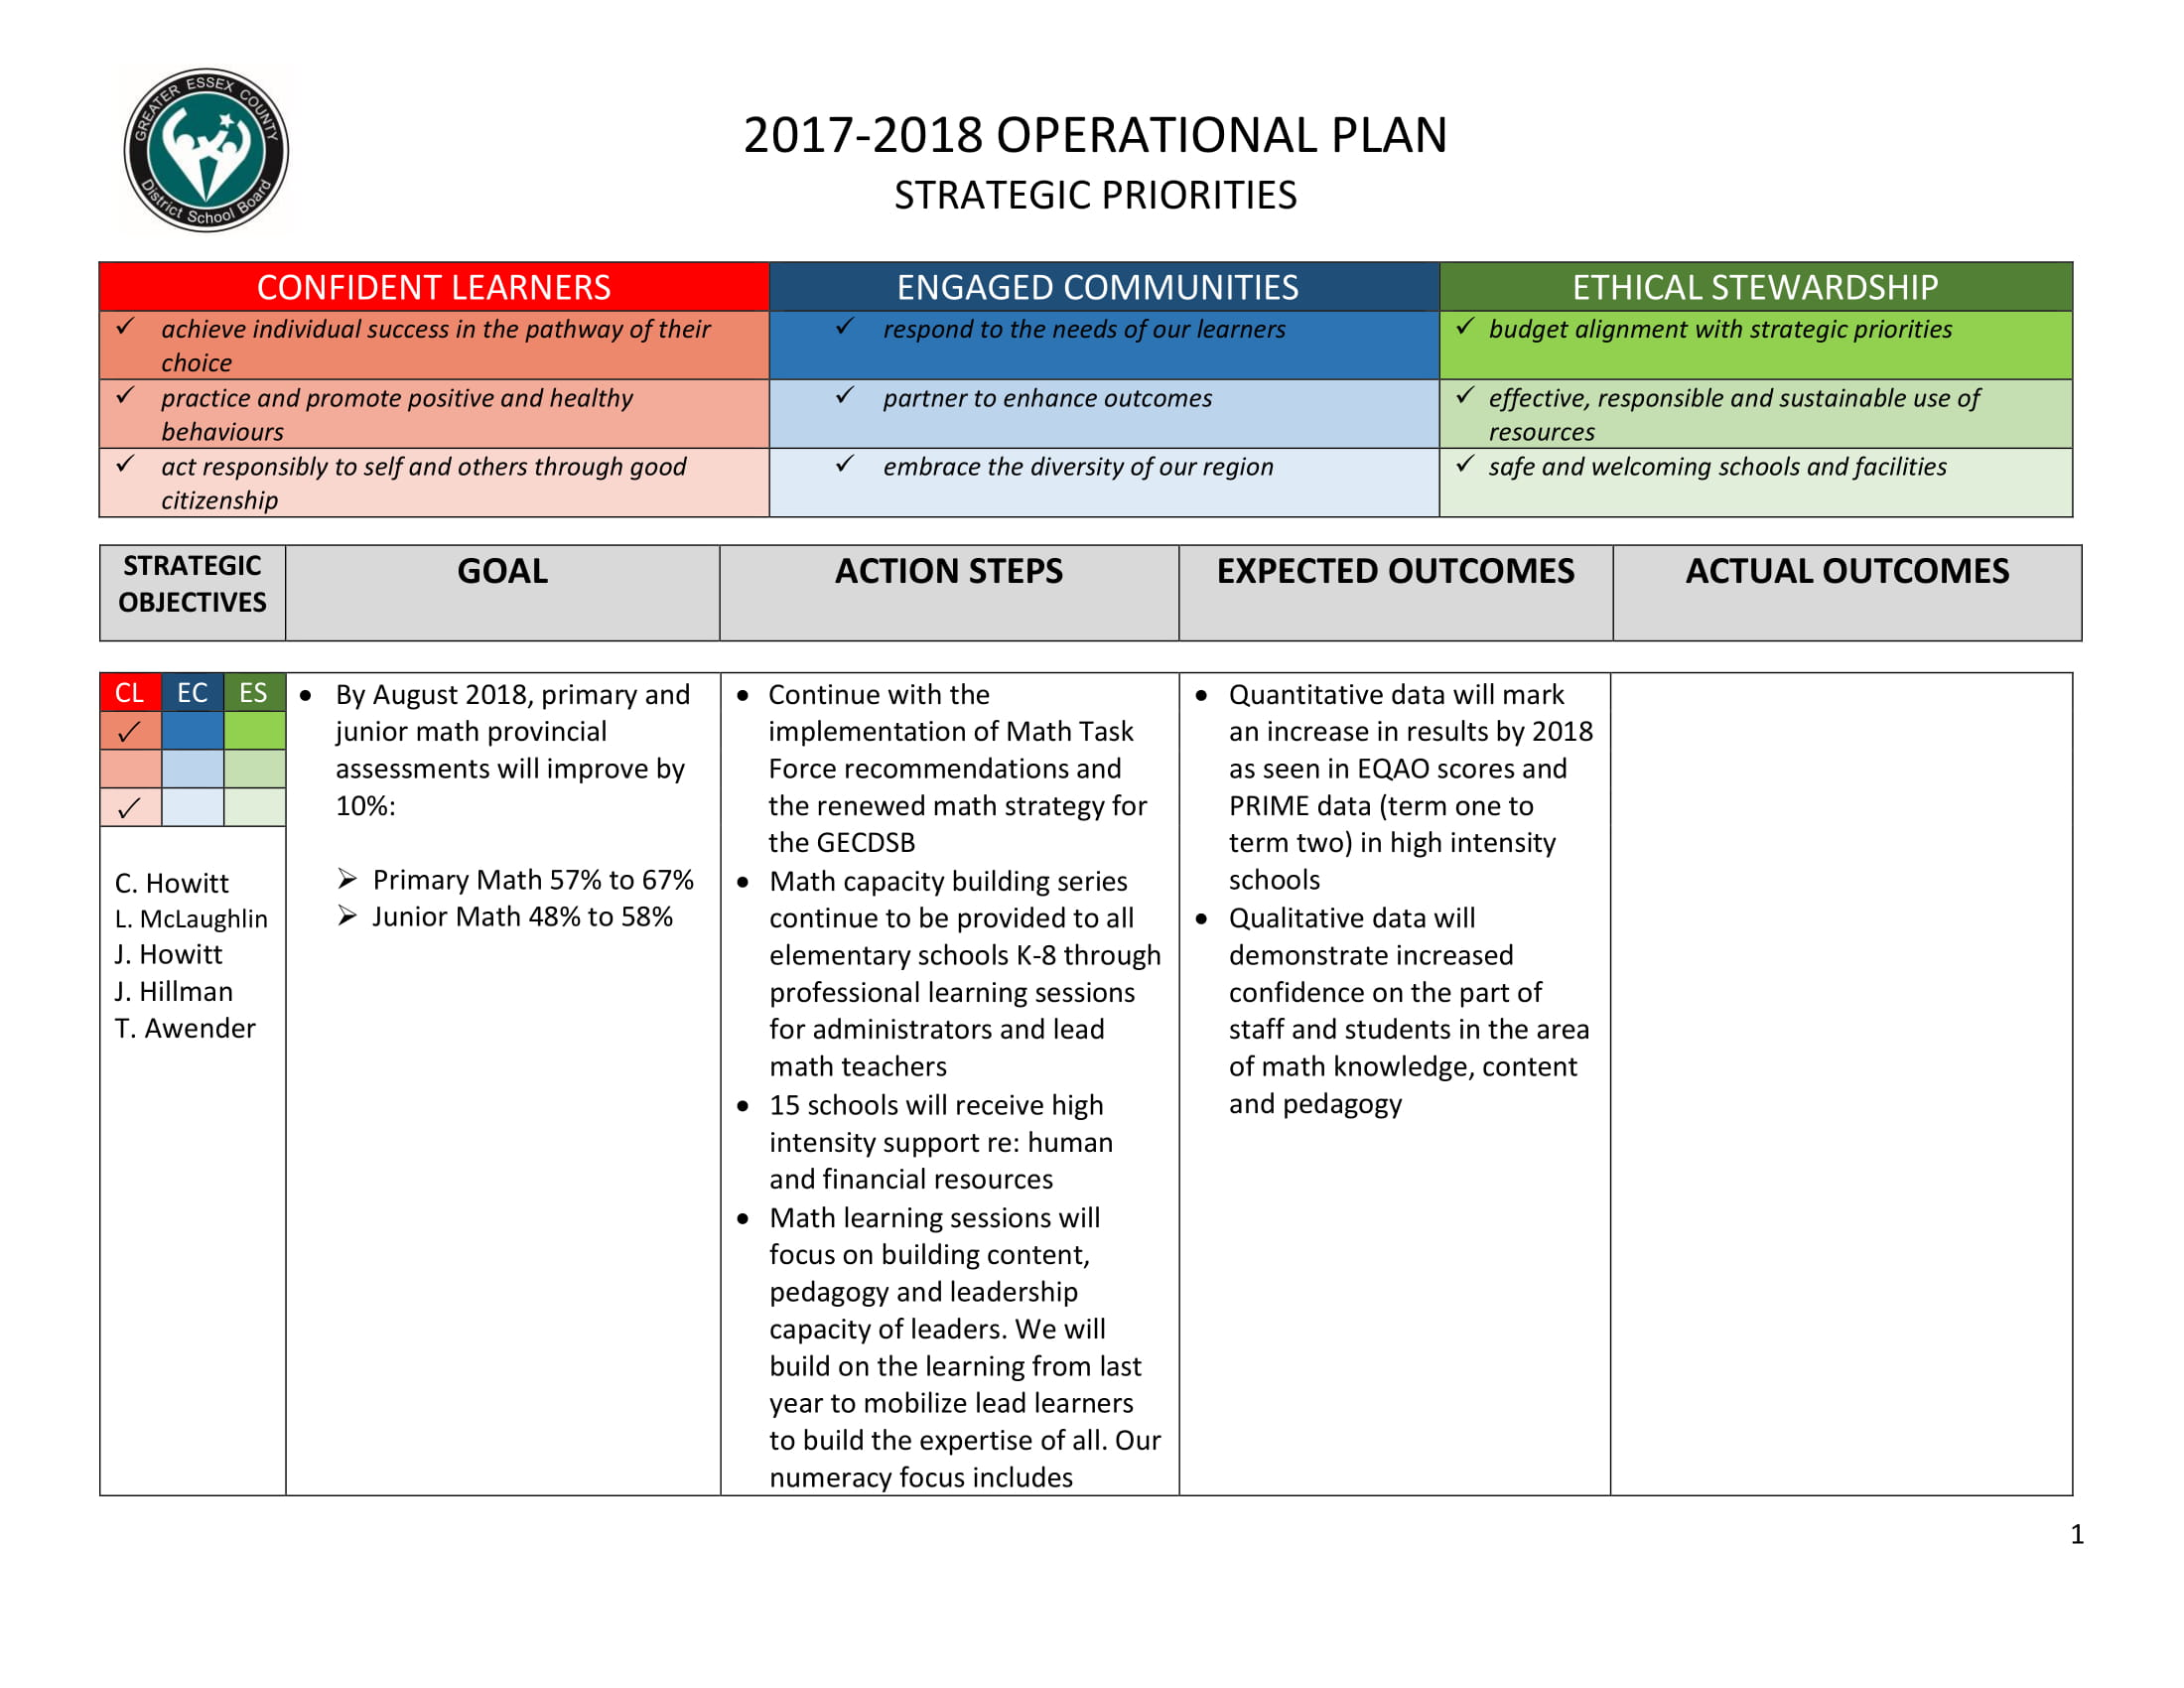 school board operational plan example 01